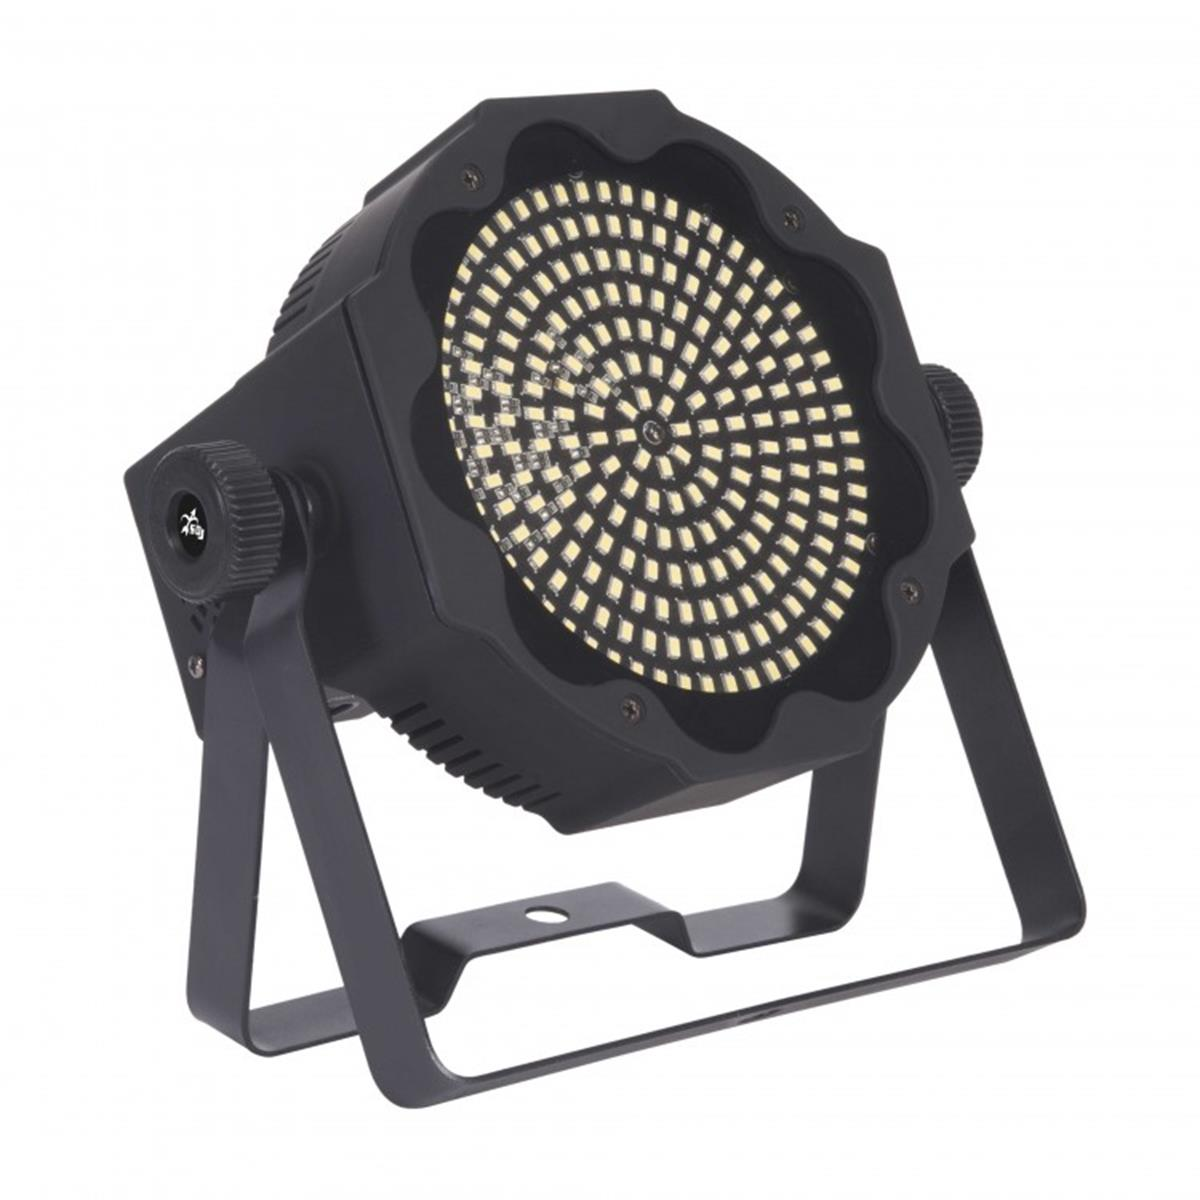 SAGITTER SLIMPARFLC PAR LED